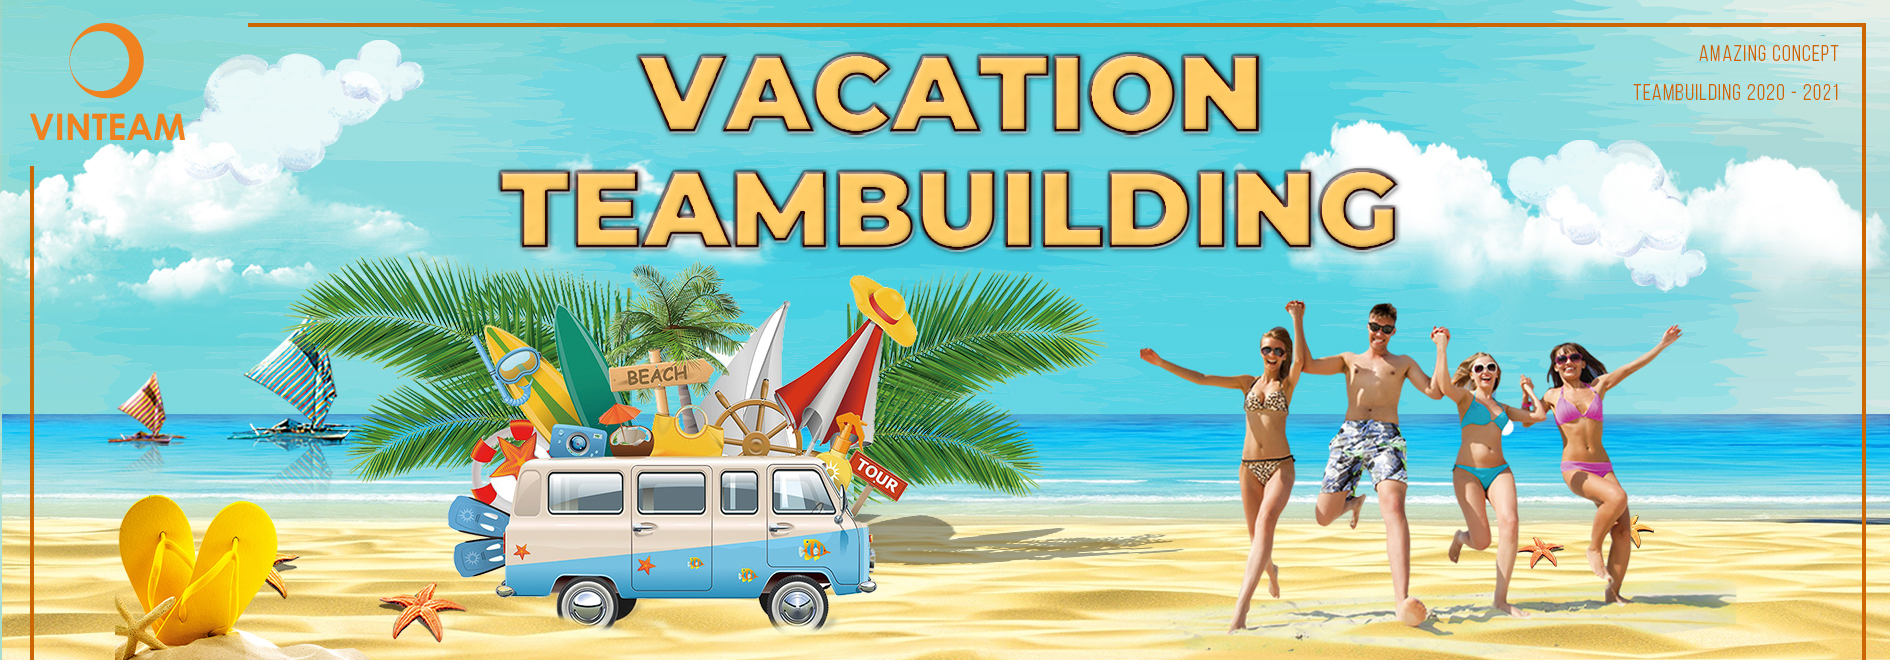 11.-COVER-VACATION-TEAMBUILDING